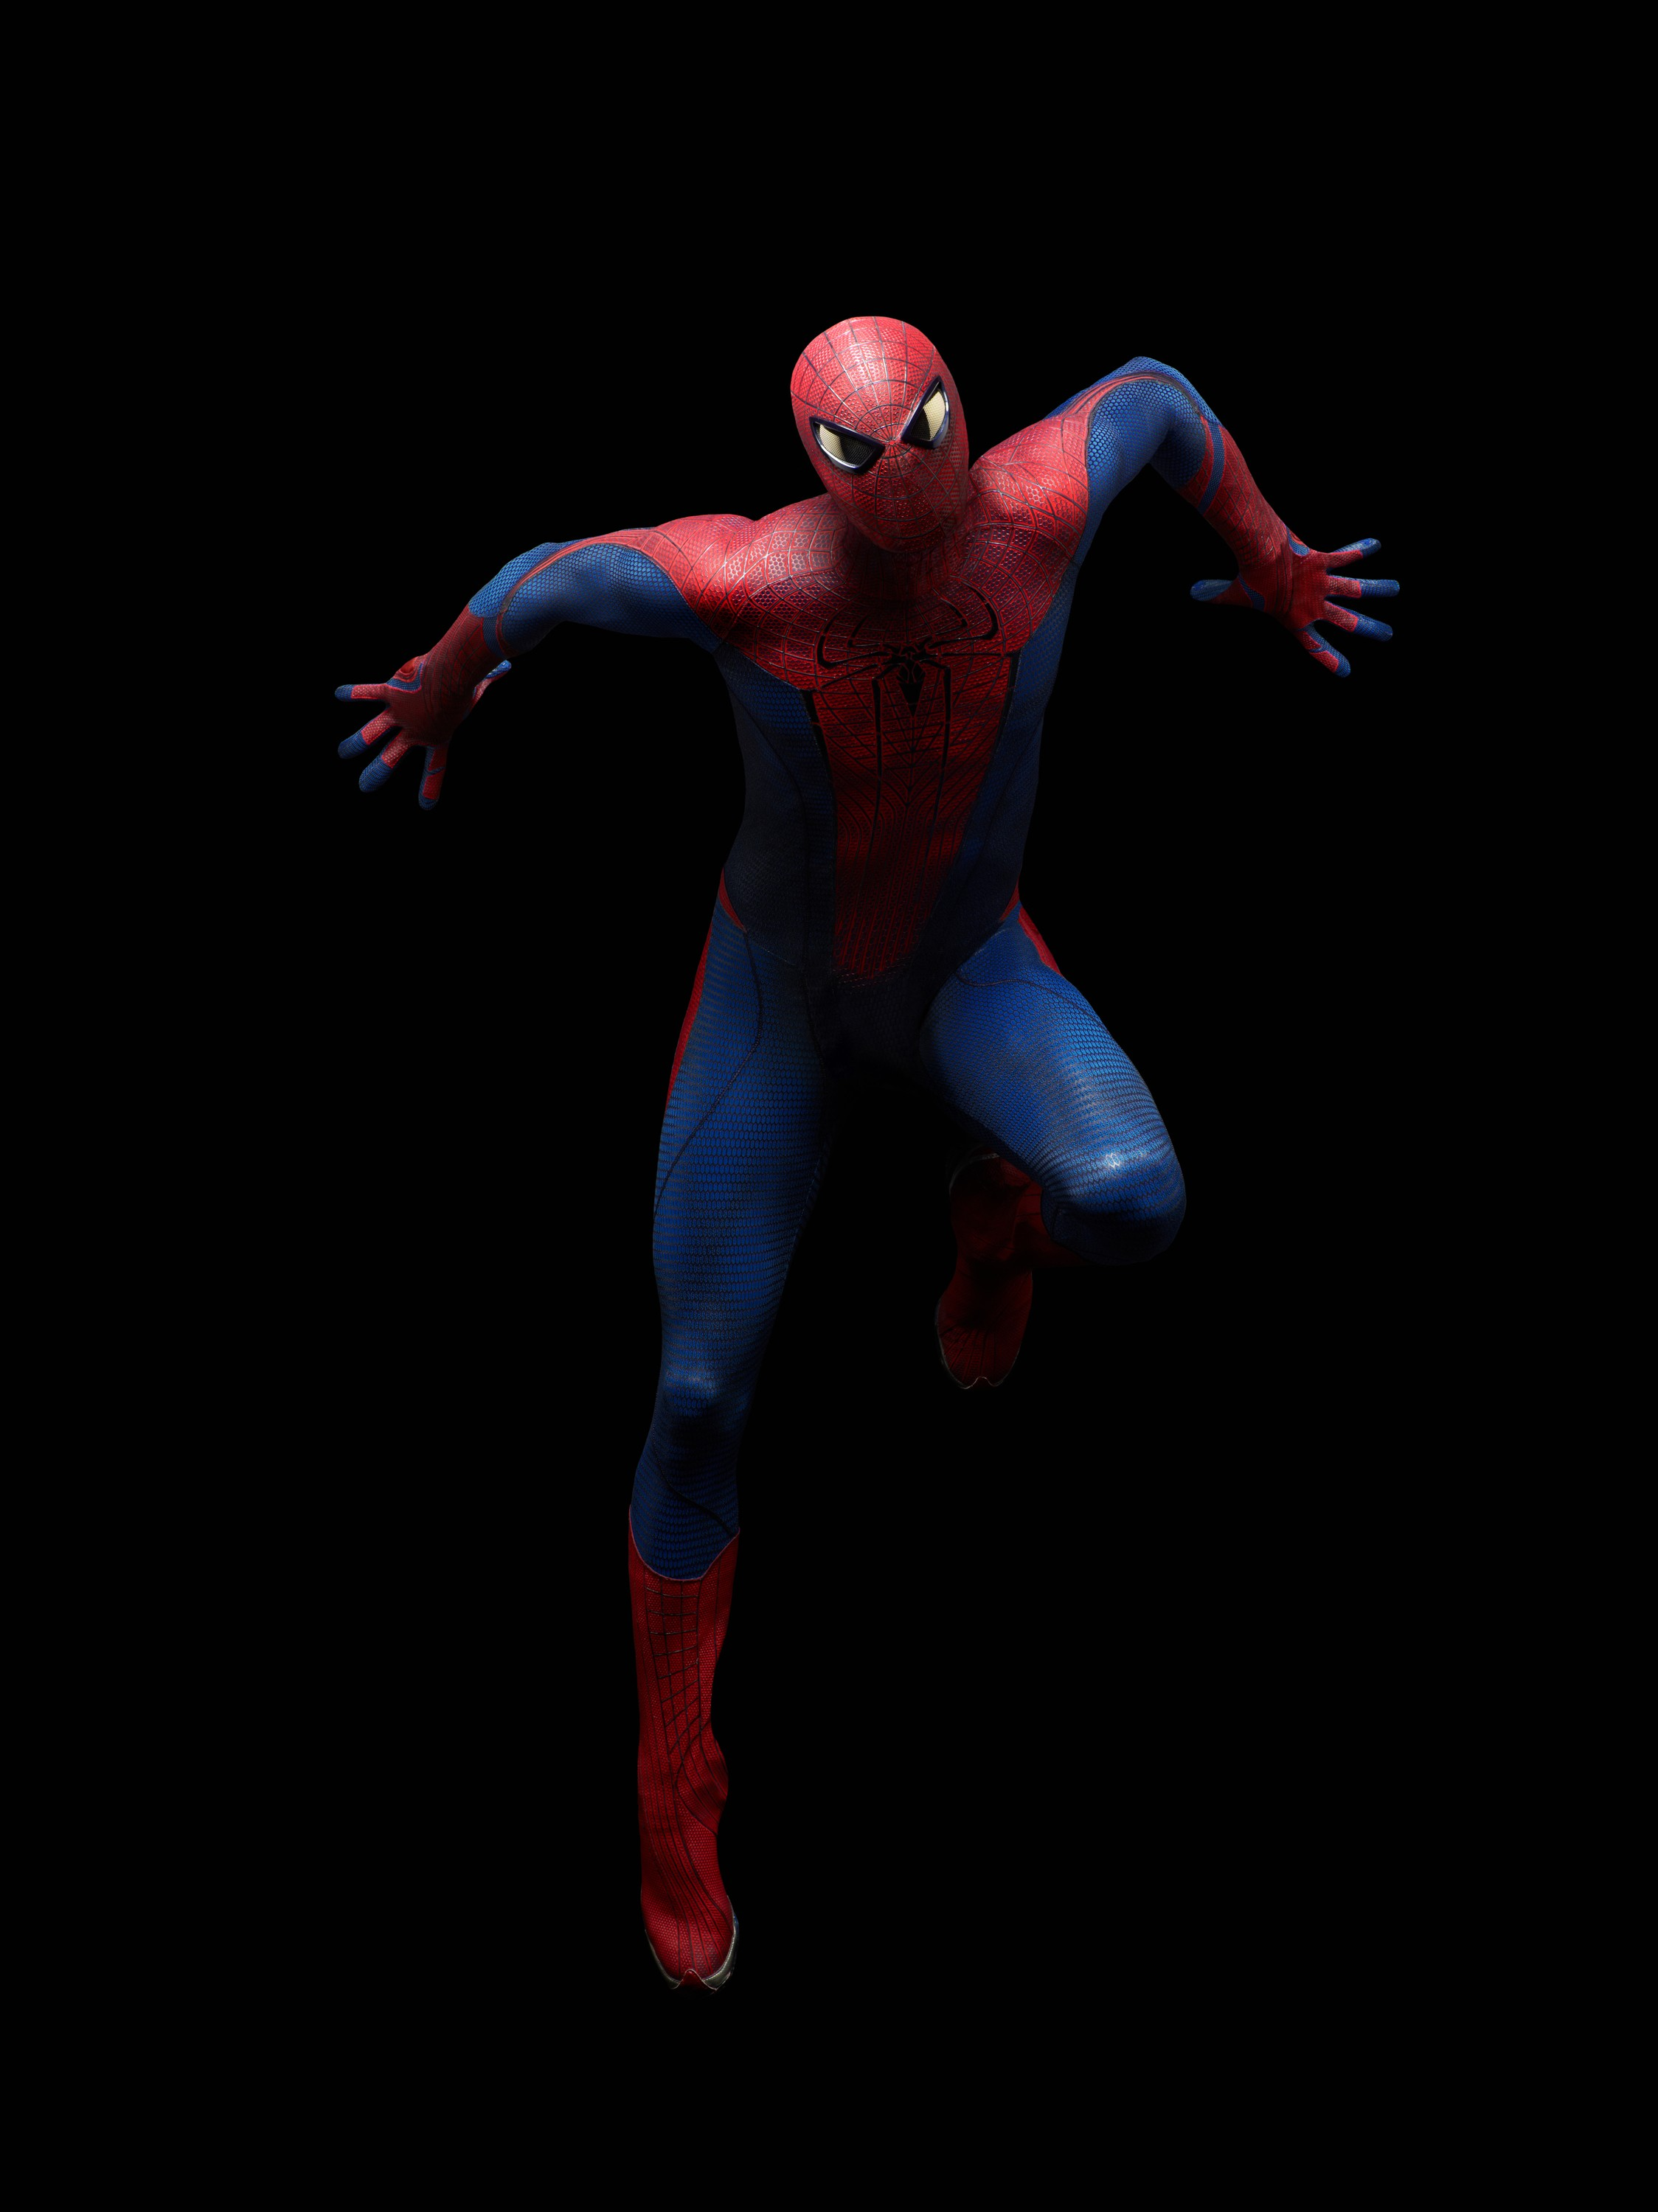 The-Amazing-Spider-Man 57f1d4e1.jpg